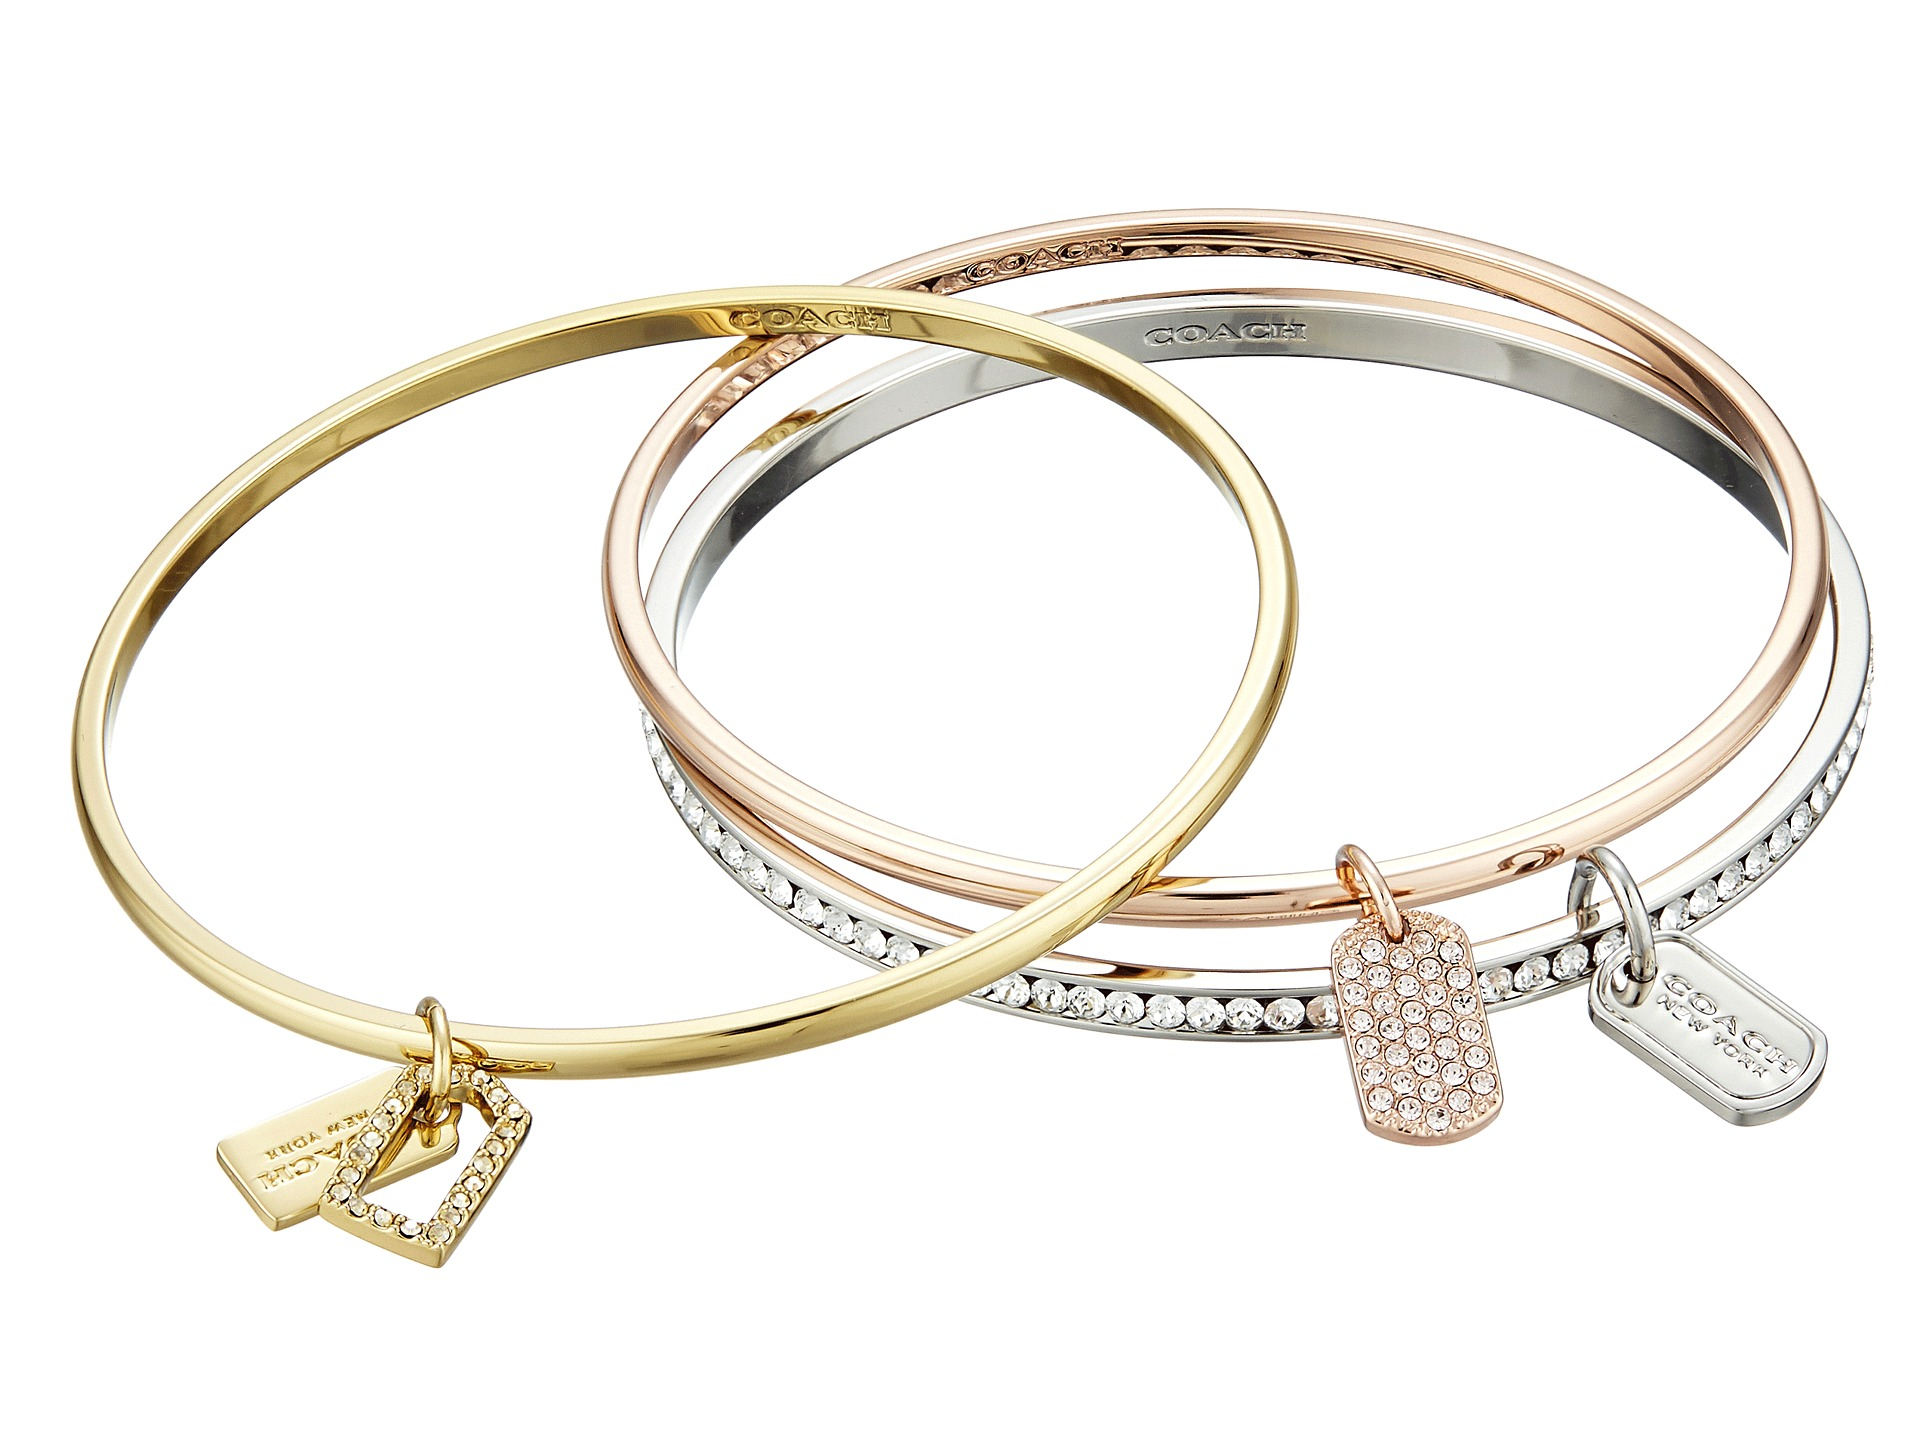 crystal metallic brands gold blue and bangle stone bangles hinged lyst silver women in pave rose round jewelry s givenchy tone bracelet